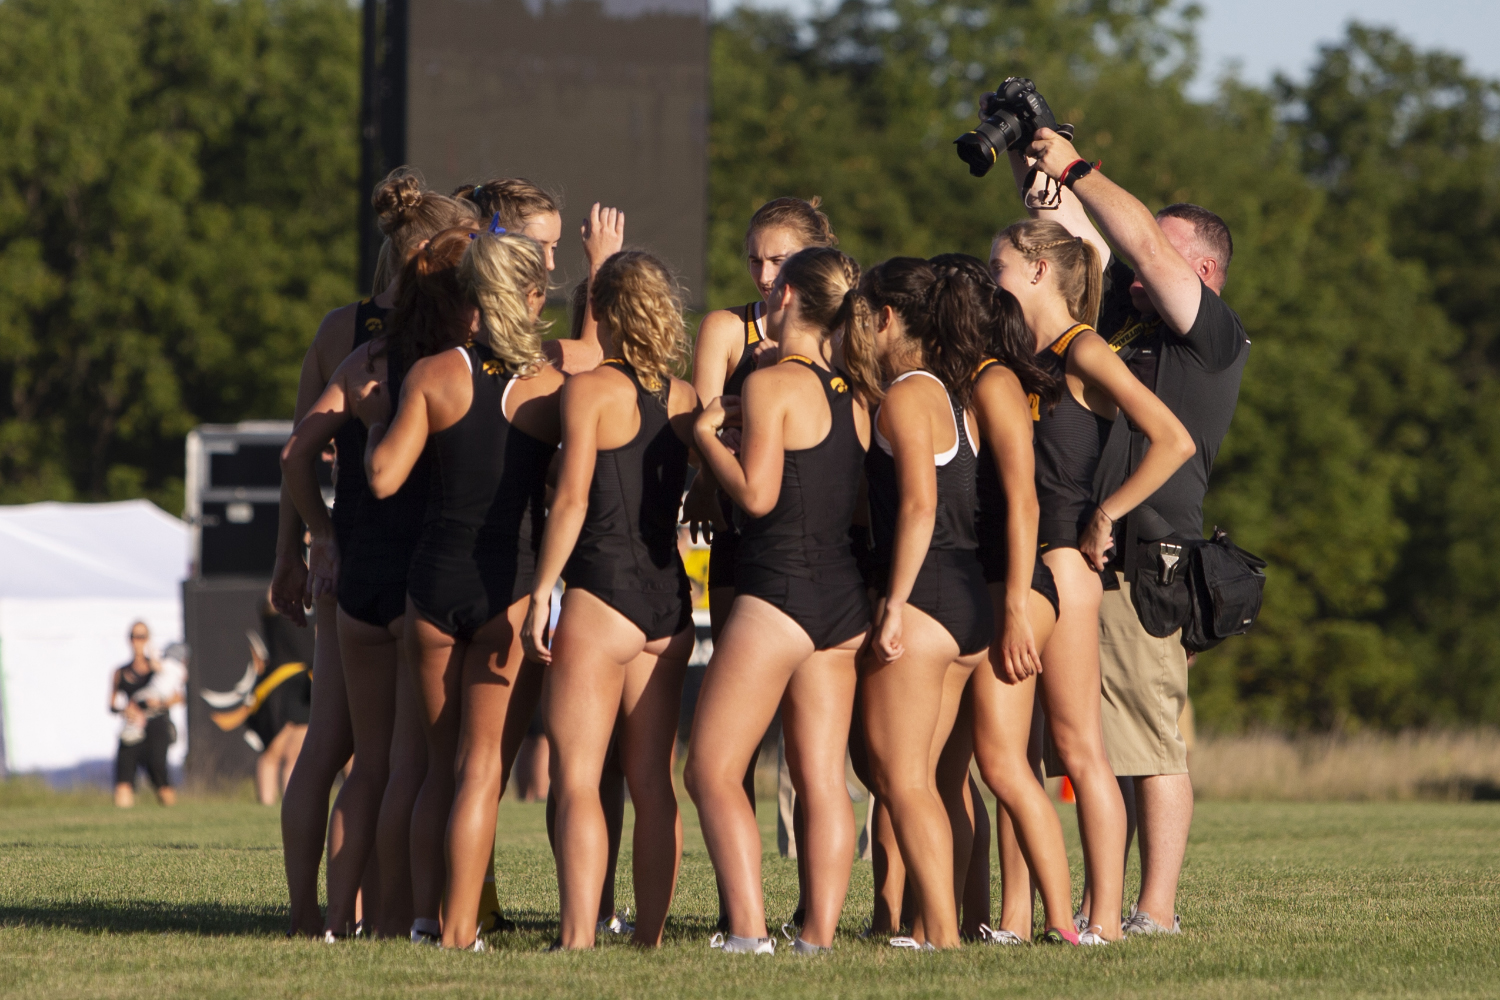 The+University+of+Iowa+women%E2%80%99s+cross+country+team+huddles+up+prior+to+the+4000+meter+race+during+the+Hawkeye+Invitational+on+Friday%2C+Sept.+6%2C+2019+at+the+Ashton+Cross+Country+Course.+The+Hawkeyes+prevailed+over+six+other+teams+to+win+first+place+overall+in+the+men%E2%80%99s+and+women%E2%80%99s+races.+Iowa+State+University+runner+Abby+Caldwell+finished+in+first+place+with+a+time+of+14%3A02.